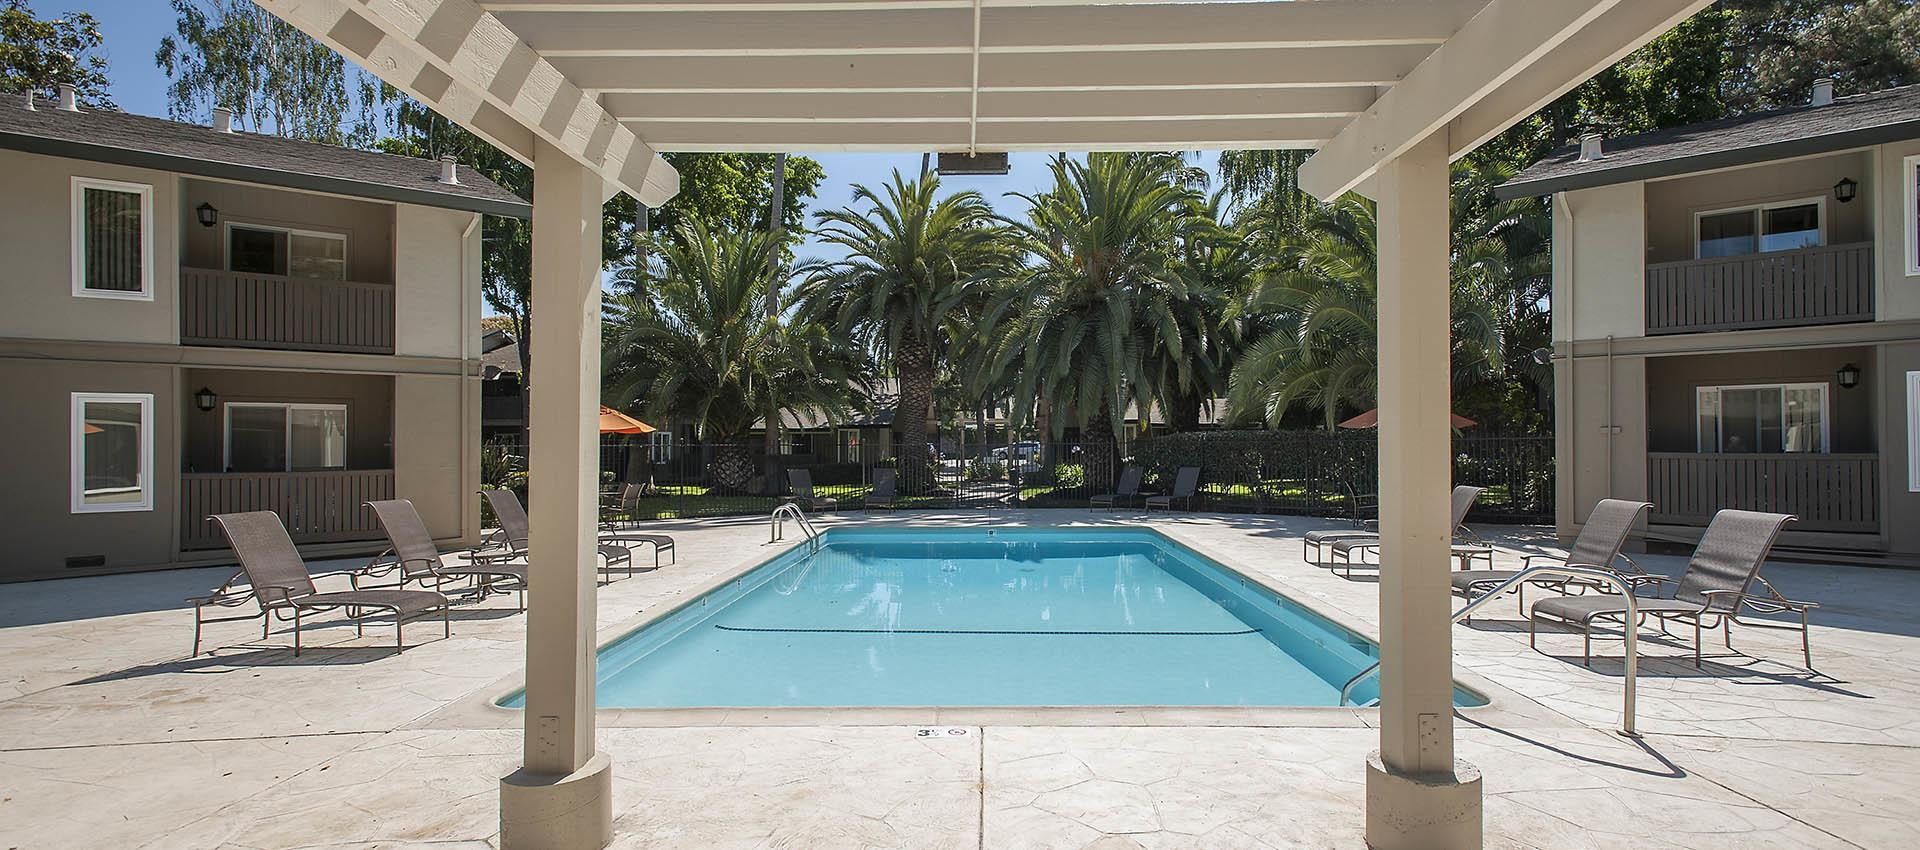 Pool at Villa Palms Apartment Homes in Livermore, California